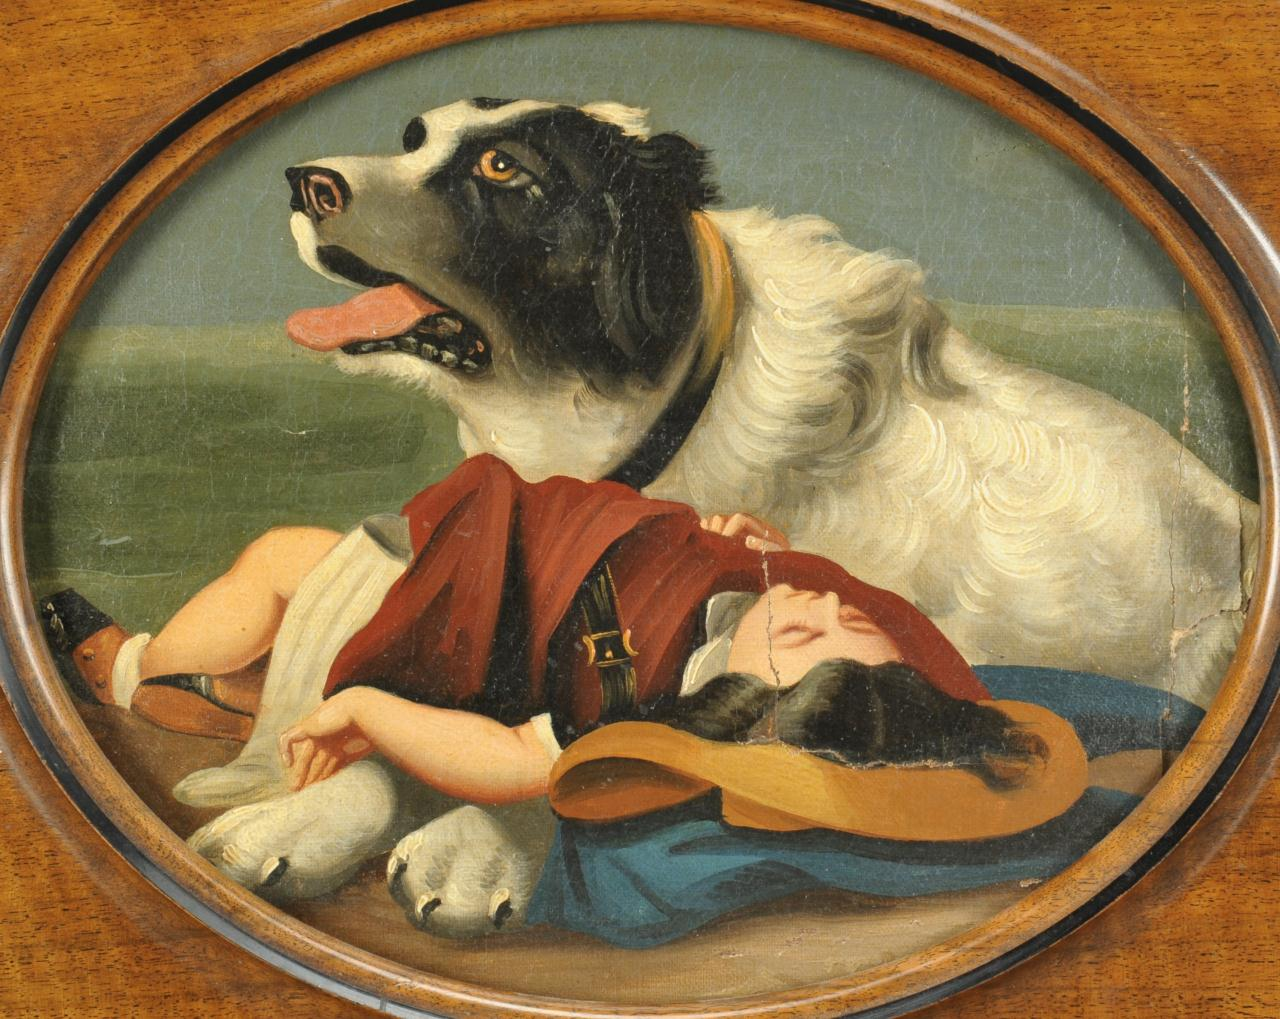 Lot 506: 19th c. oil on panel painting of dog and child